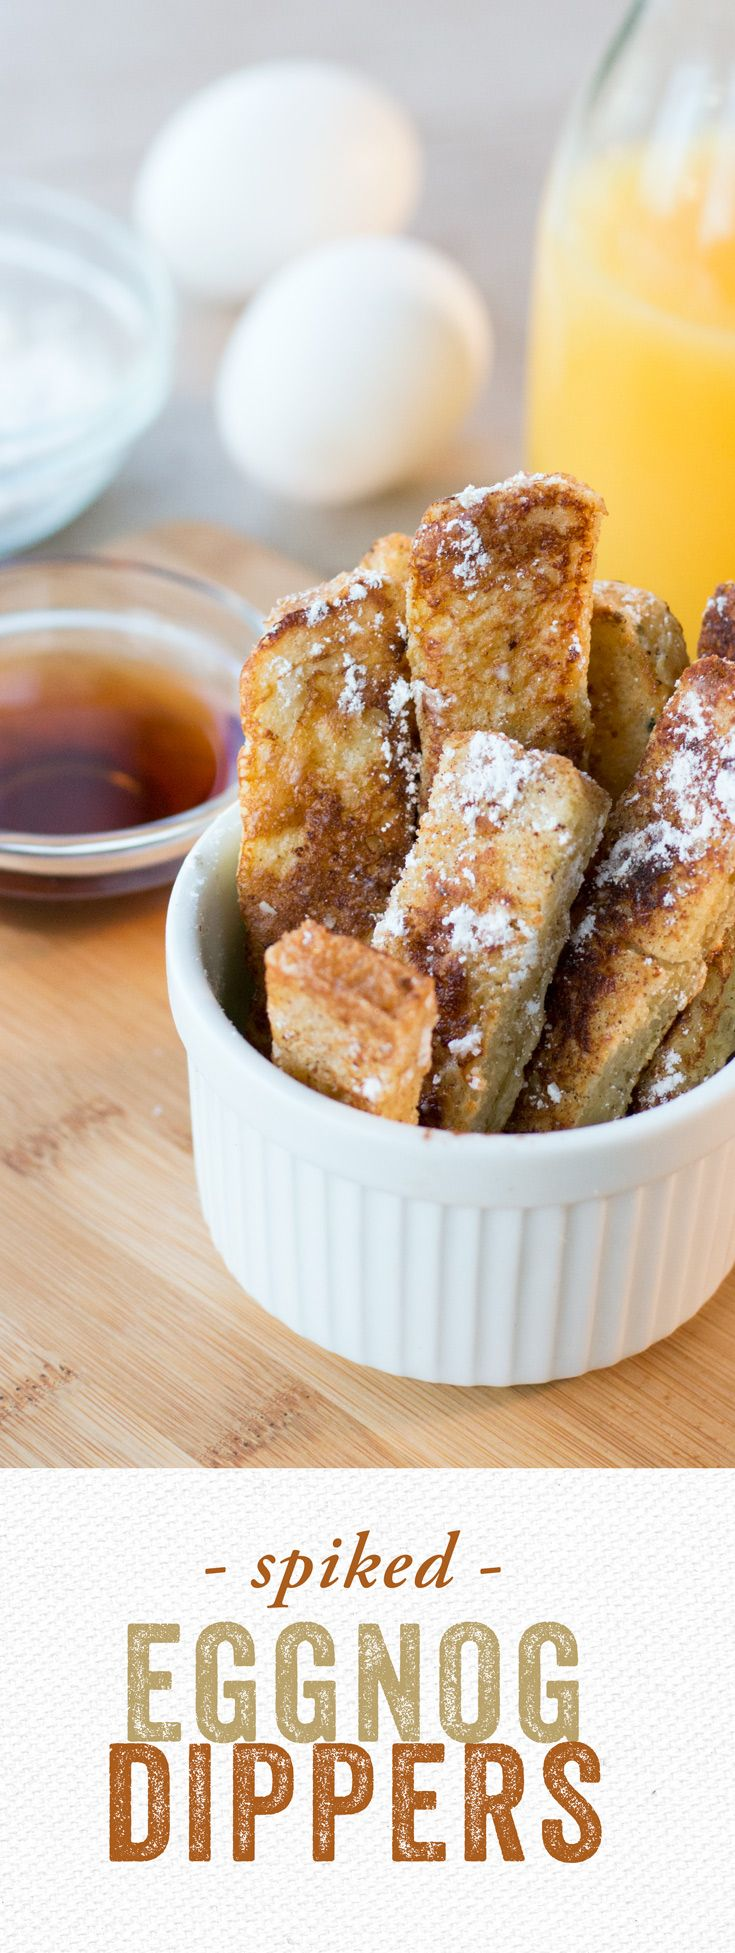 Spiked Eggnog Dippers: When bourbon, eggnog, eggs, nutmeg and California Goldminer Sourdough Bread come together, French toast magic happens! Serve with maple syrup and call it brunch.